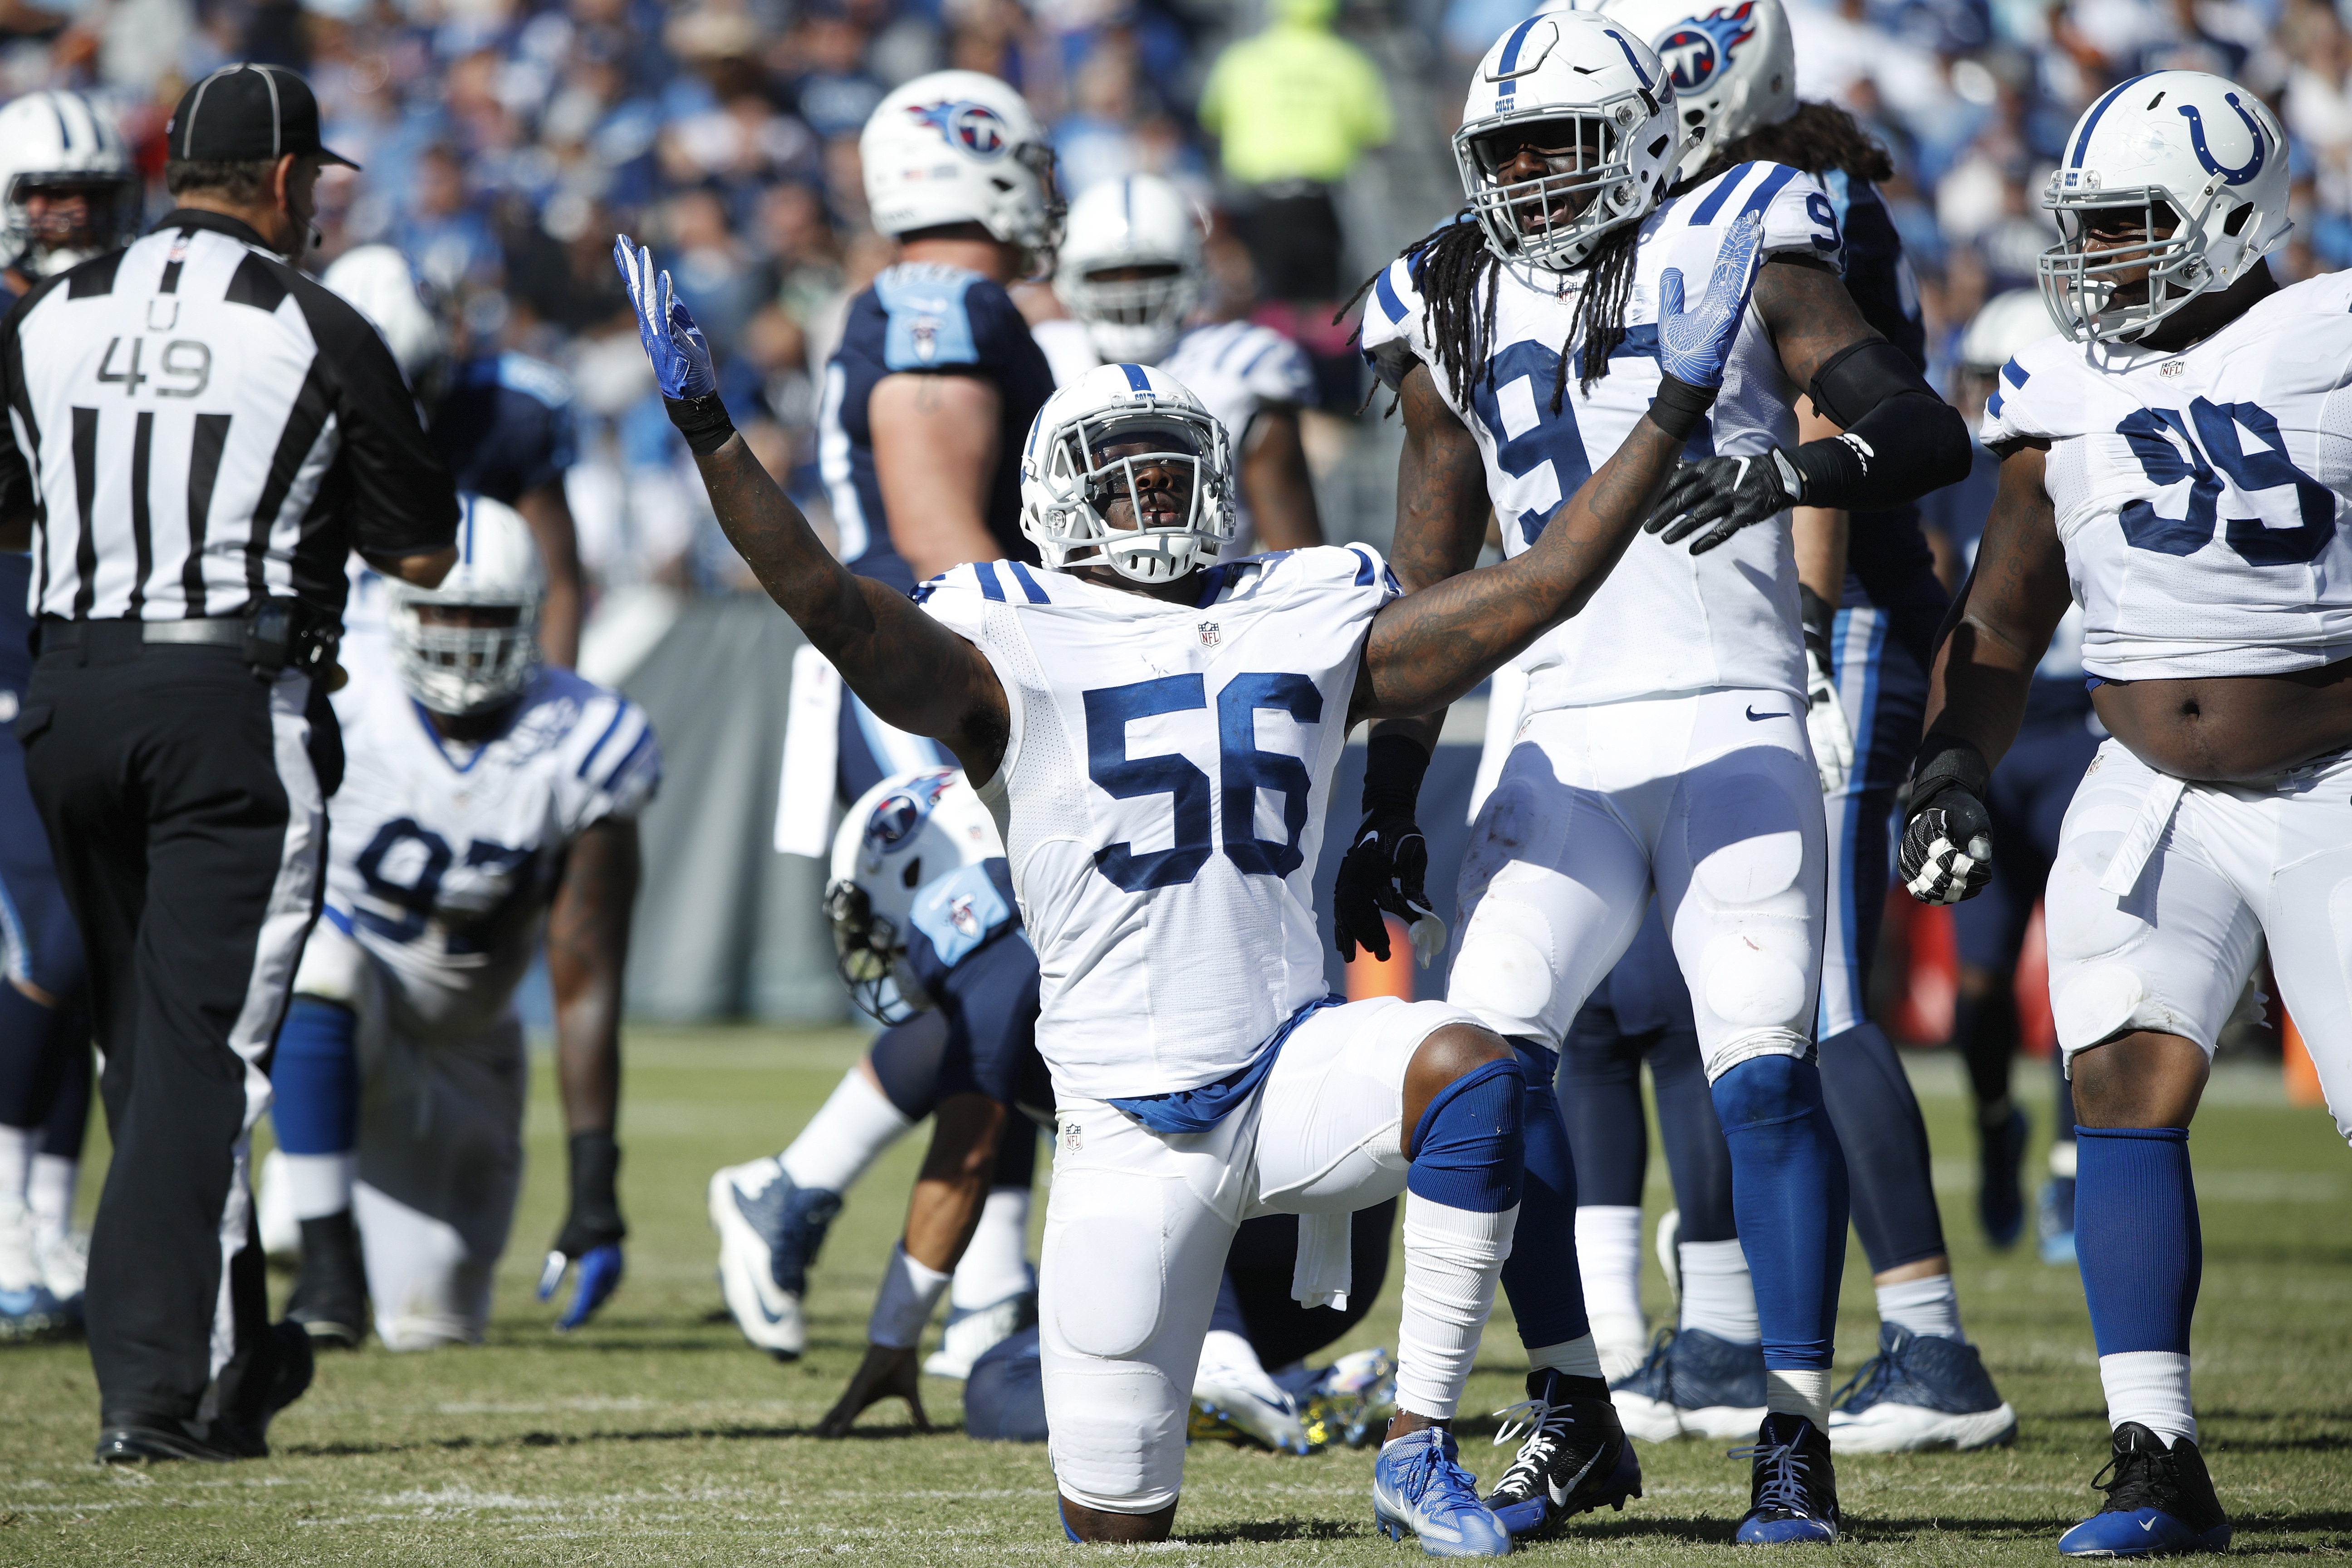 617523140-indianapolis-colts-v-tennessee-titans.jpg